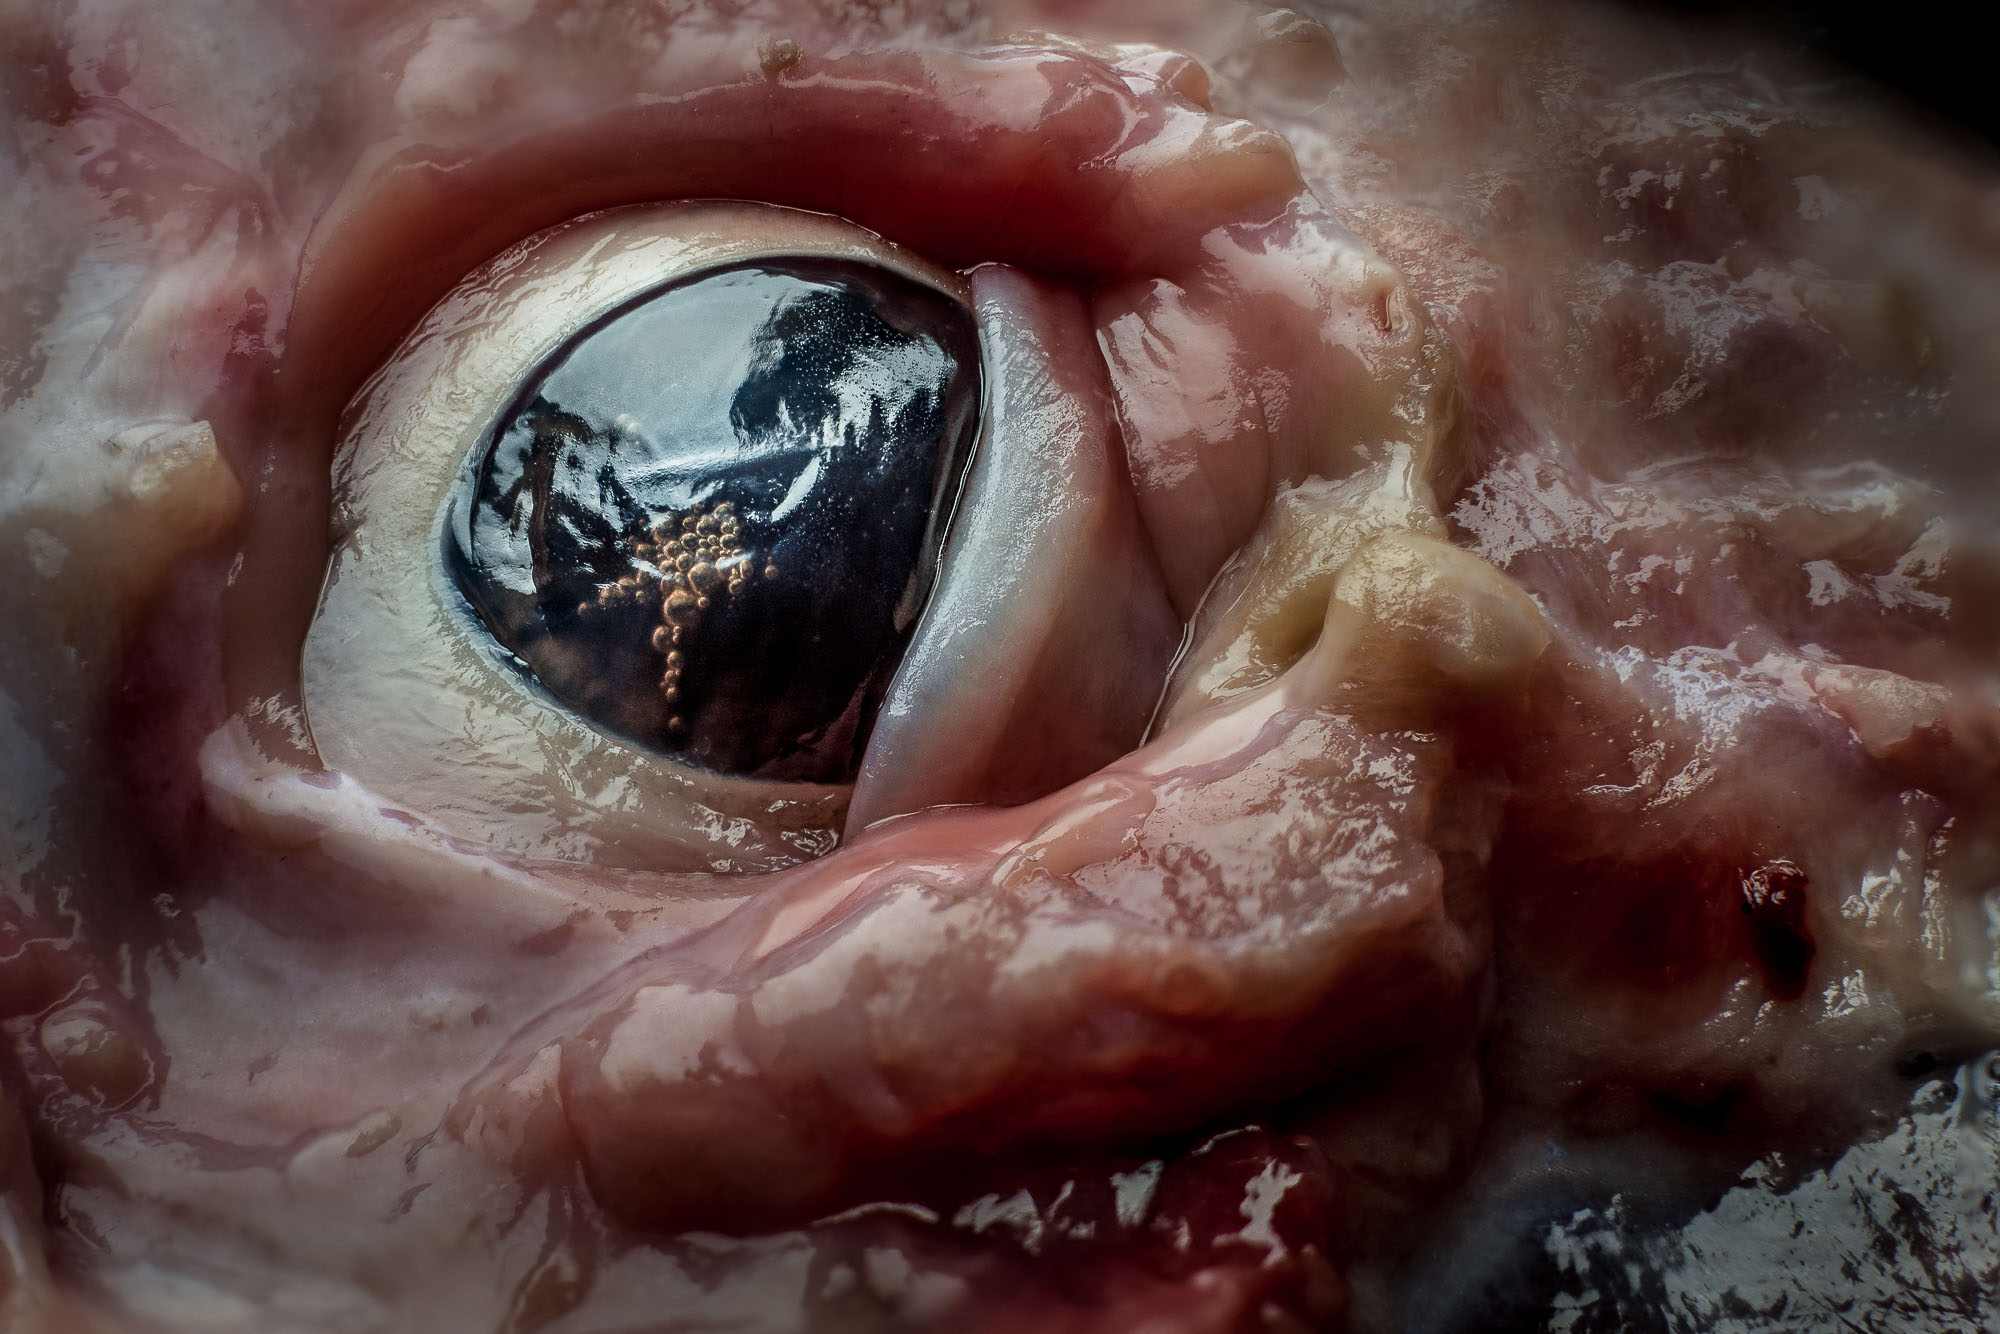 A close-up view of the eye of a pig, with the skin peeled off.